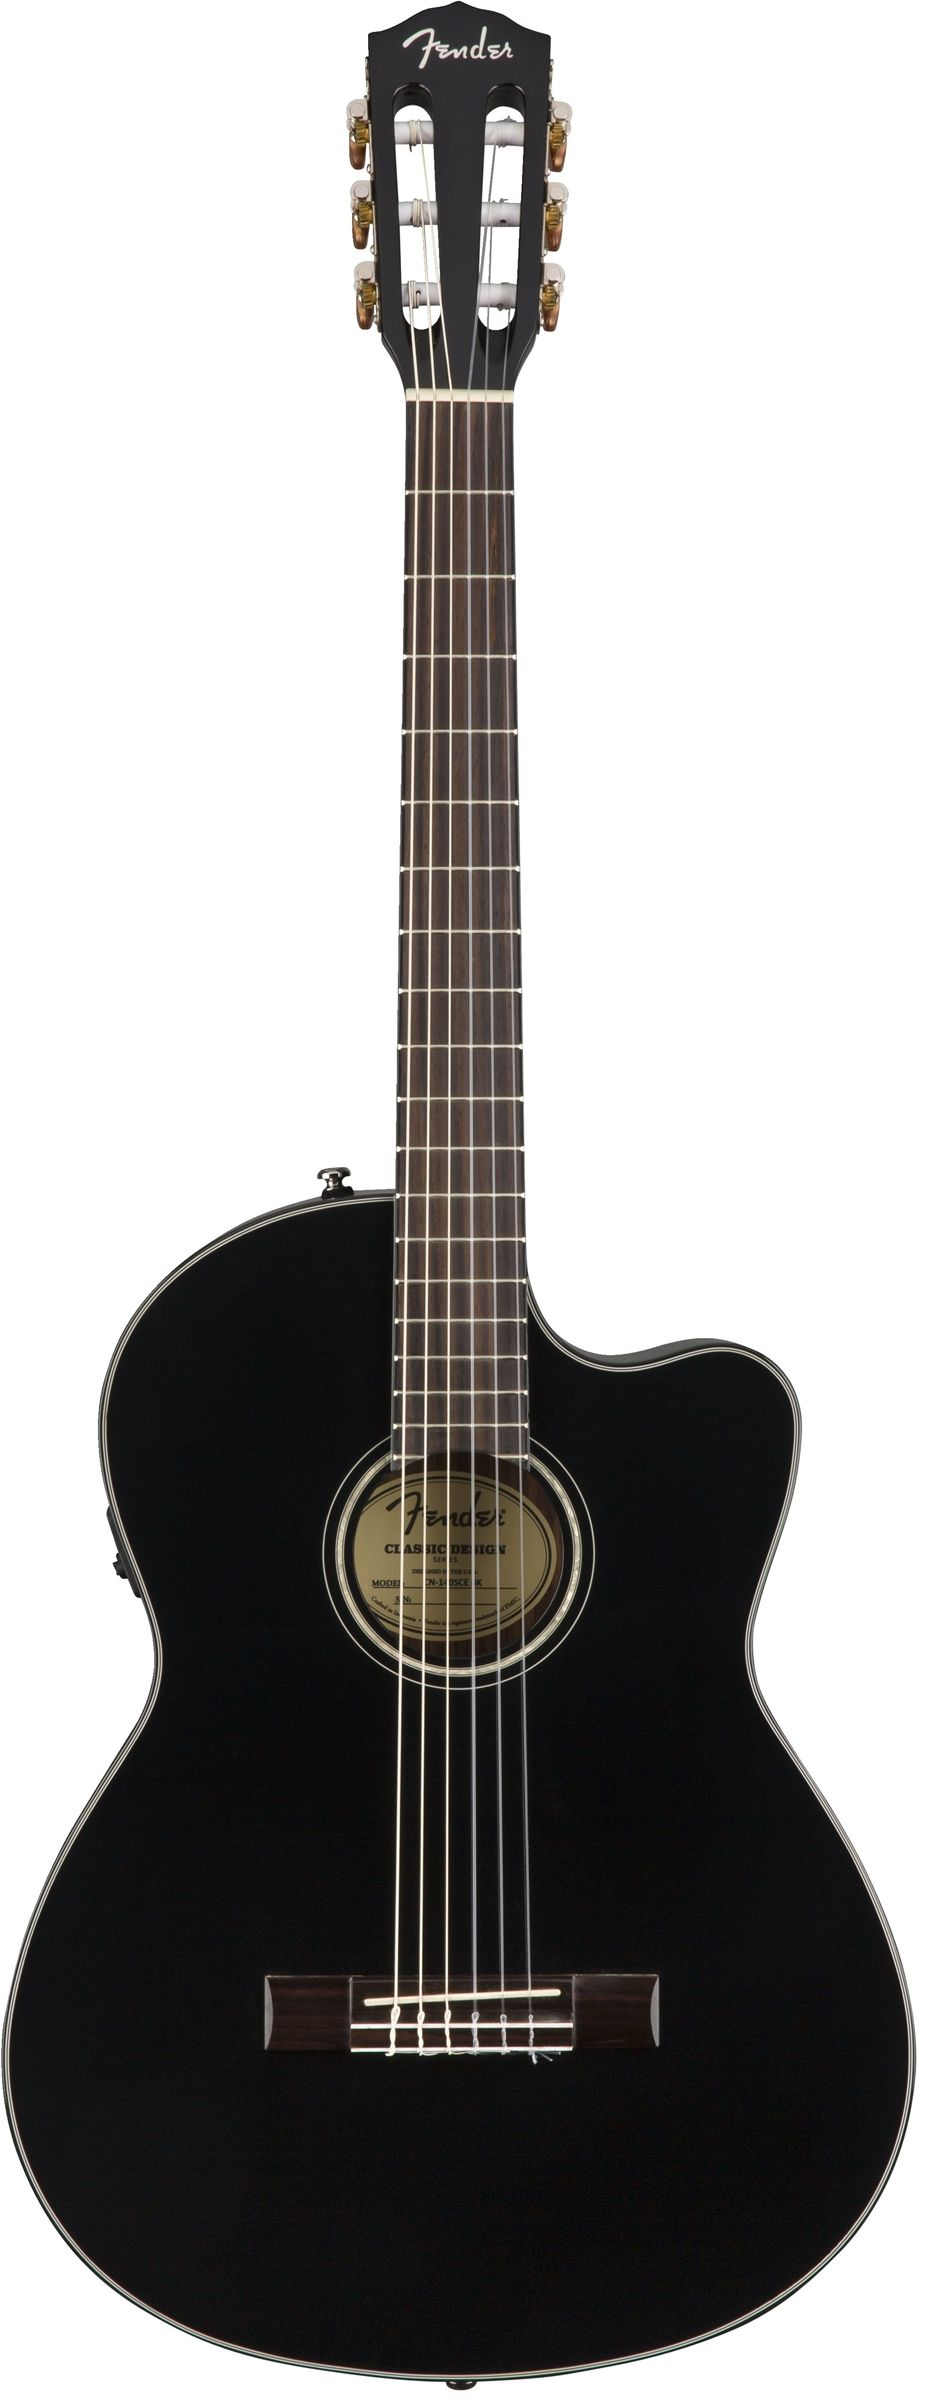 Fender CN-140SCE Nylon-String Acoustic Guitar in Black - Andertons Music Co.